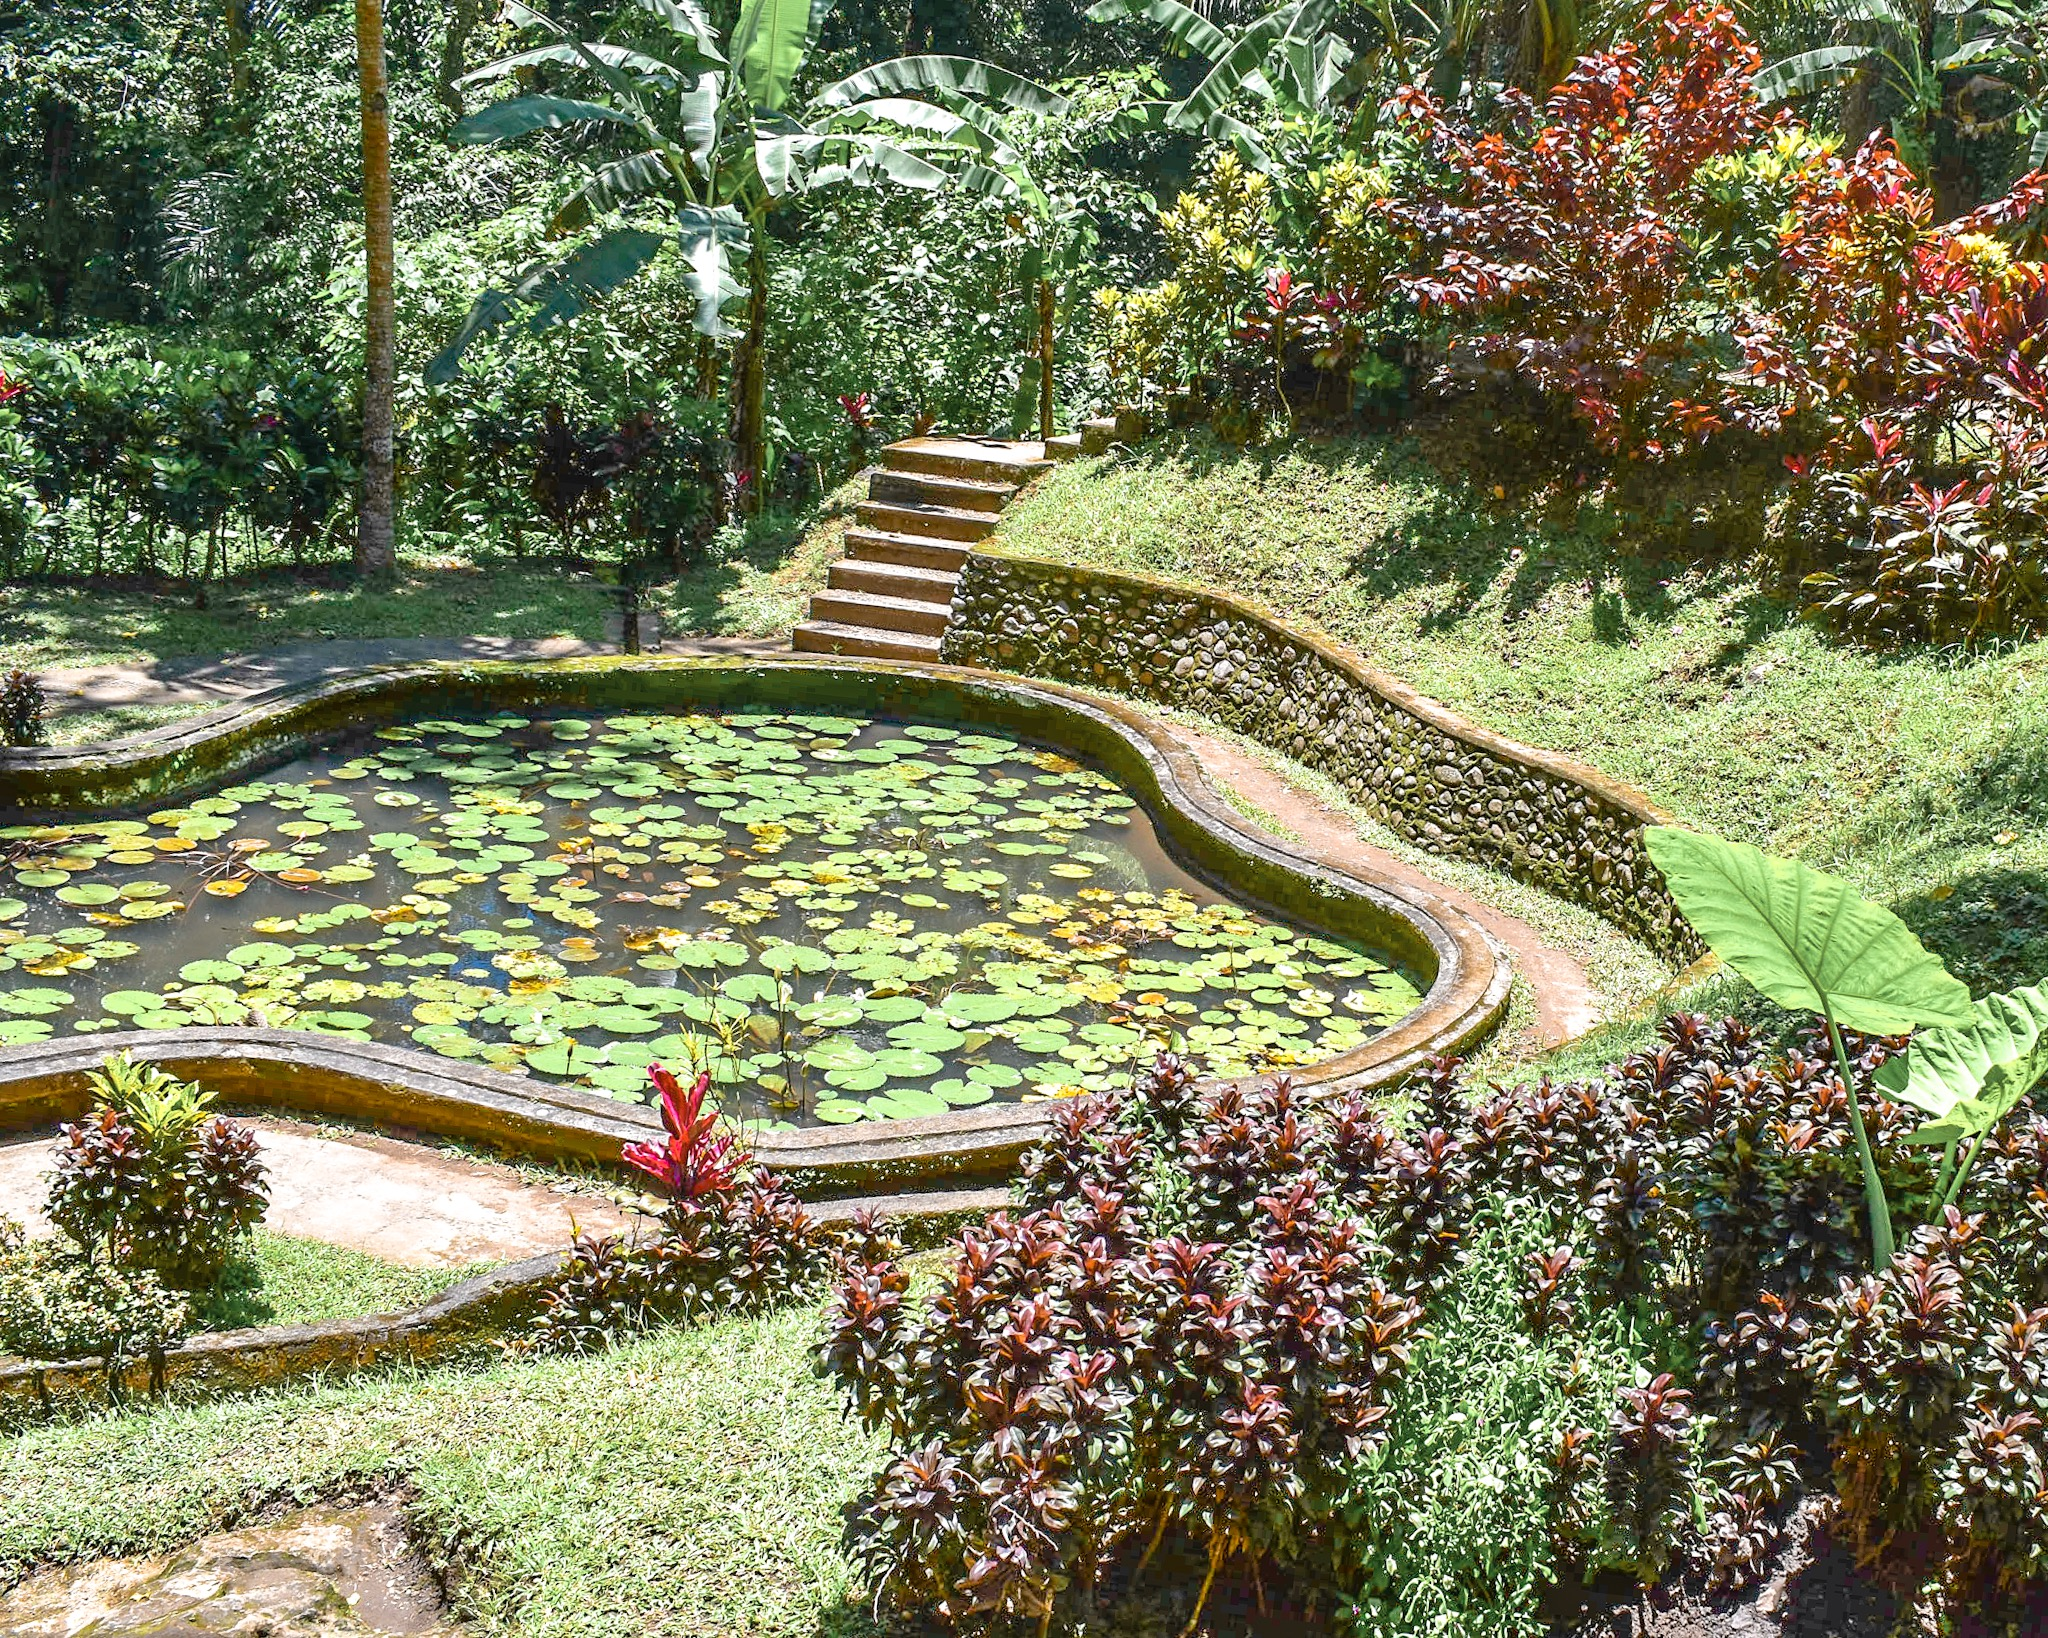 Lily Pond at the Elephant Cave Temple in Bali